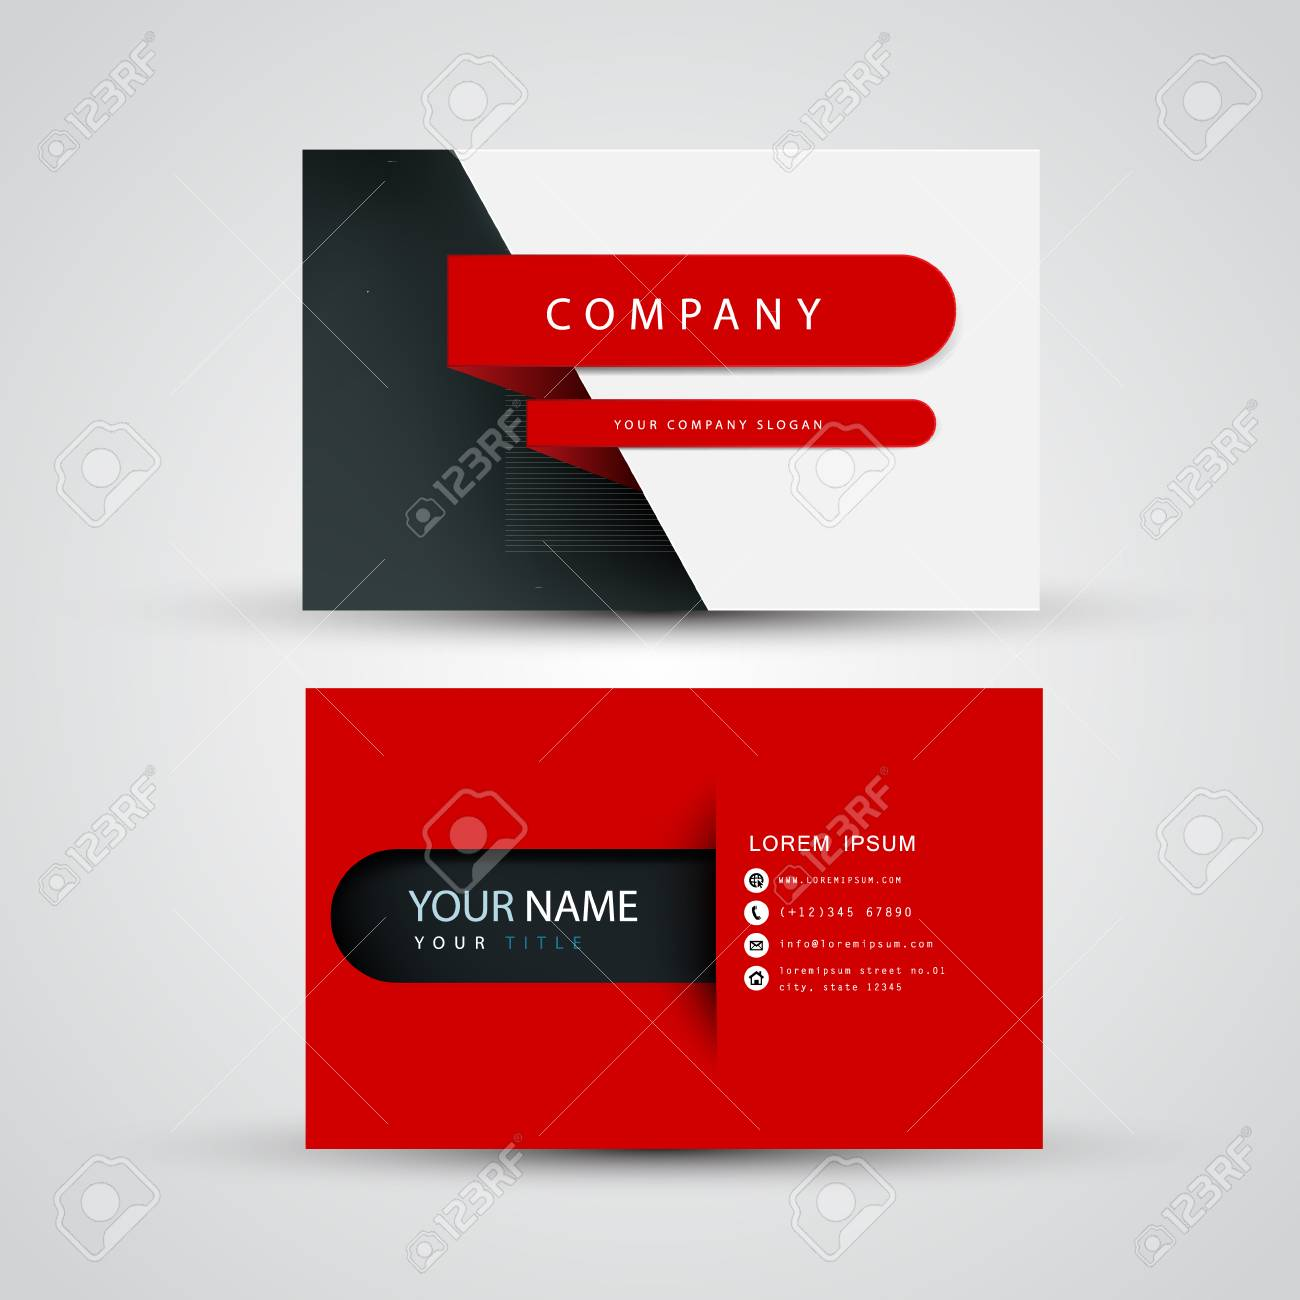 Business card vector background foto royalty free gravuras imagens banco de imagens business card vector background reheart Images